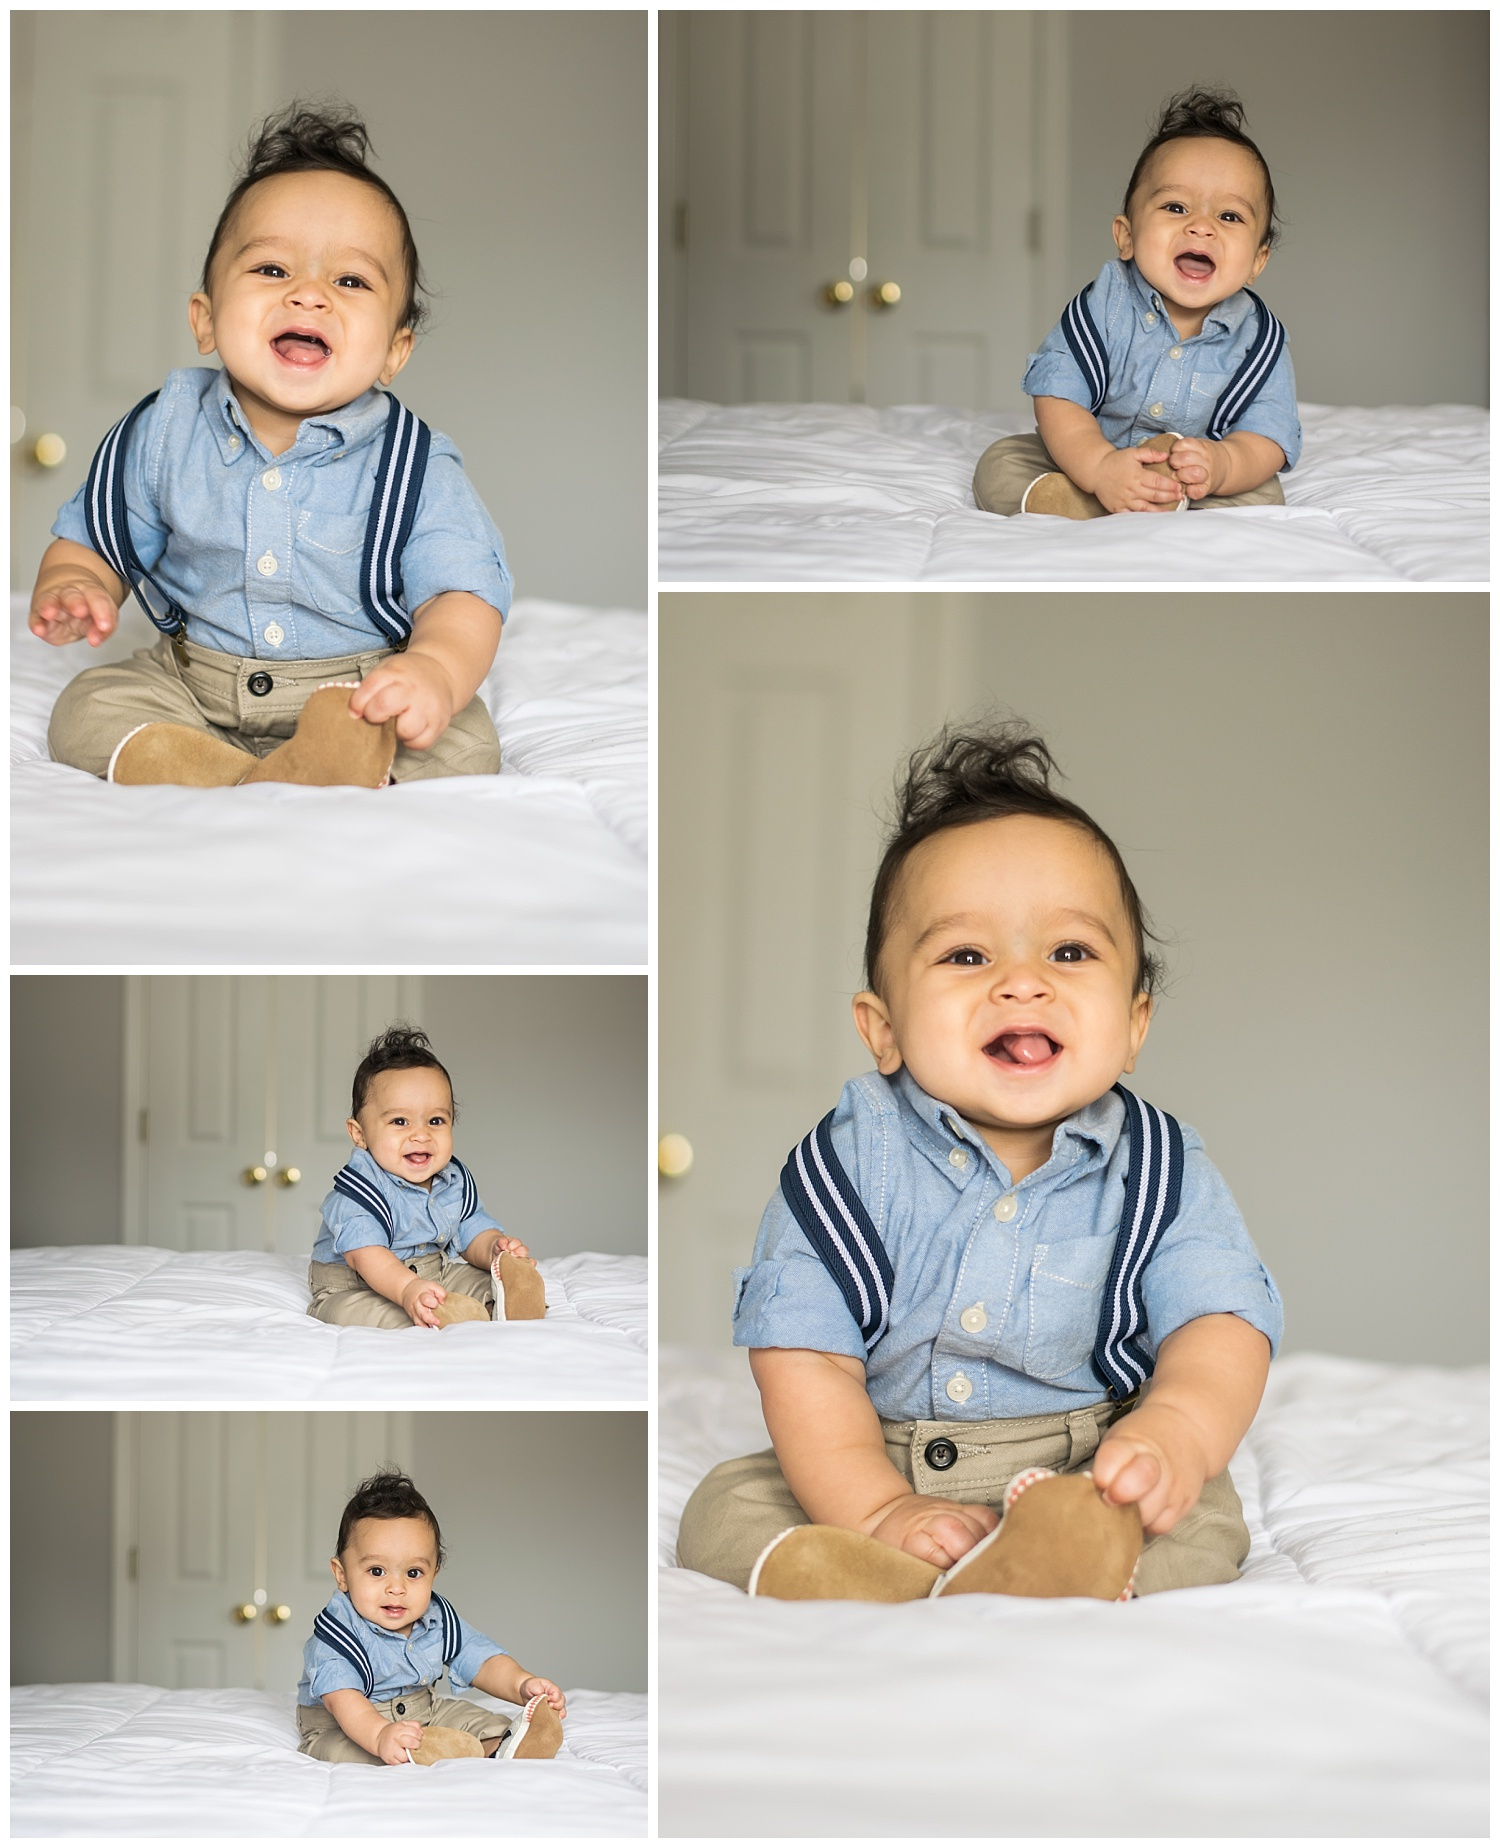 these are a collage of images of a six month old baby boy sitting up on the bed in a suspenders outfit.